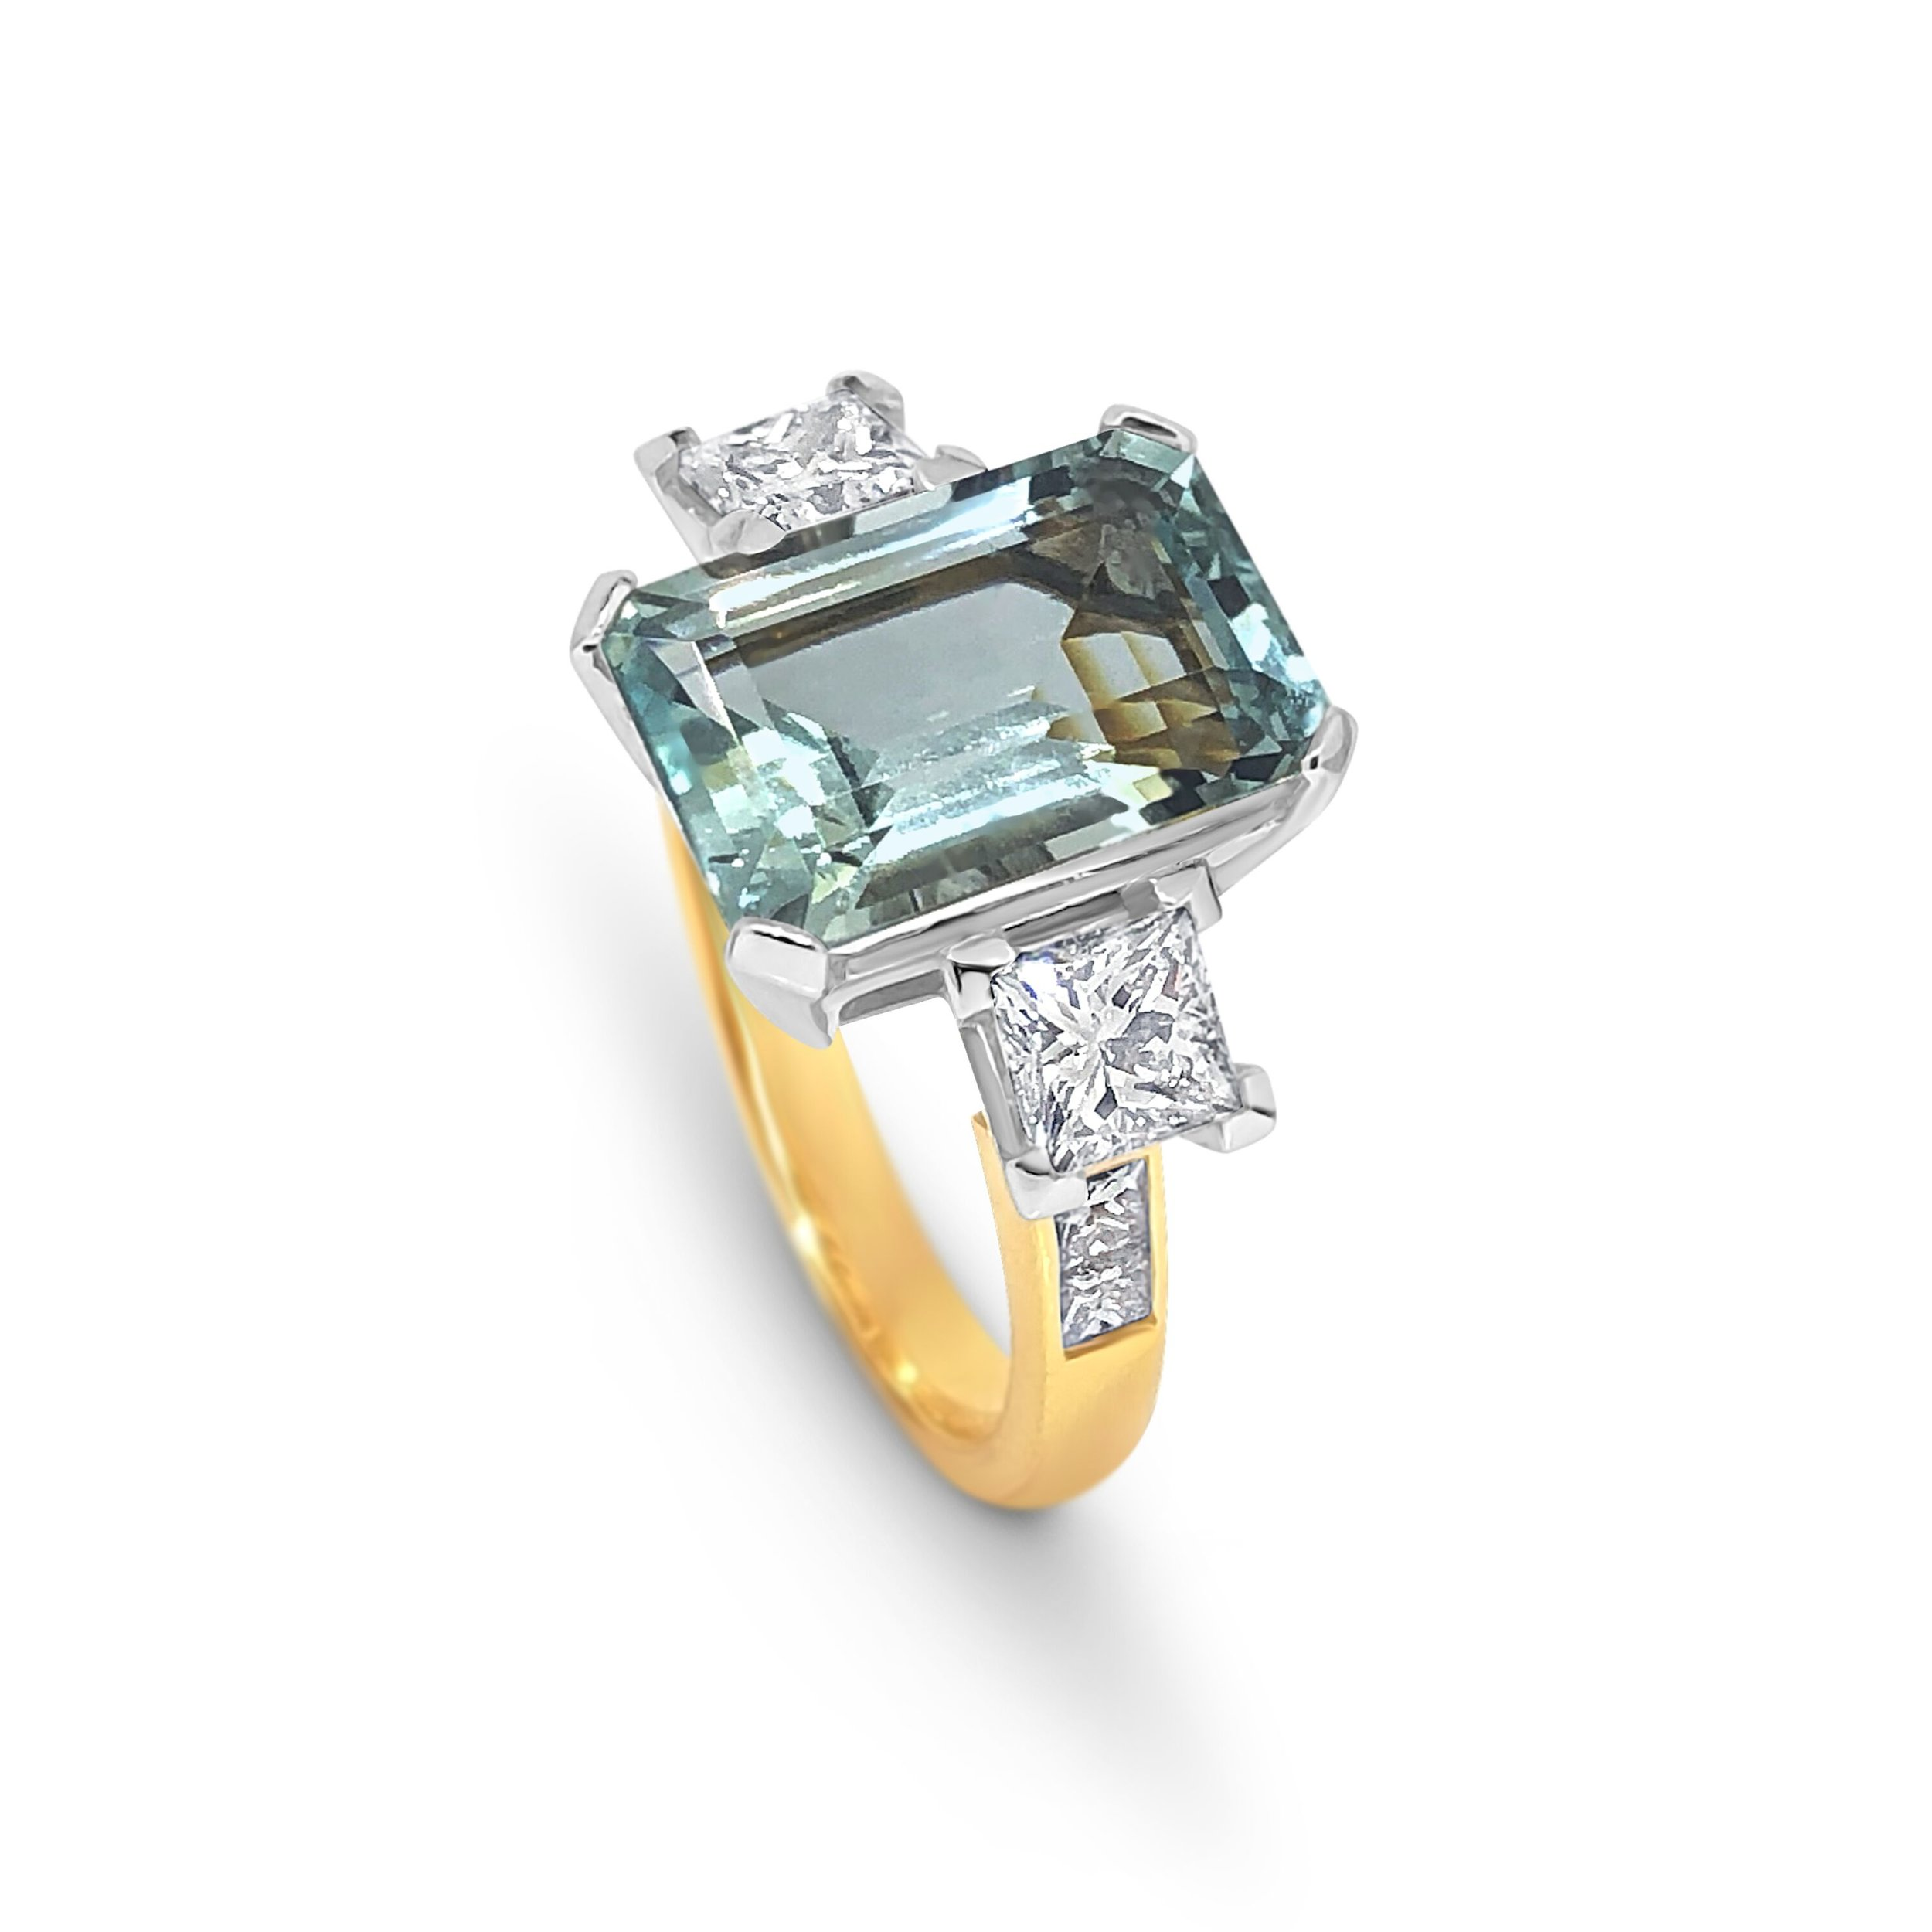 18ct yellow and white gold, aquamarine and diamond,  emerald cut aquamarine and princess cut diamond, trilogy .jpeg